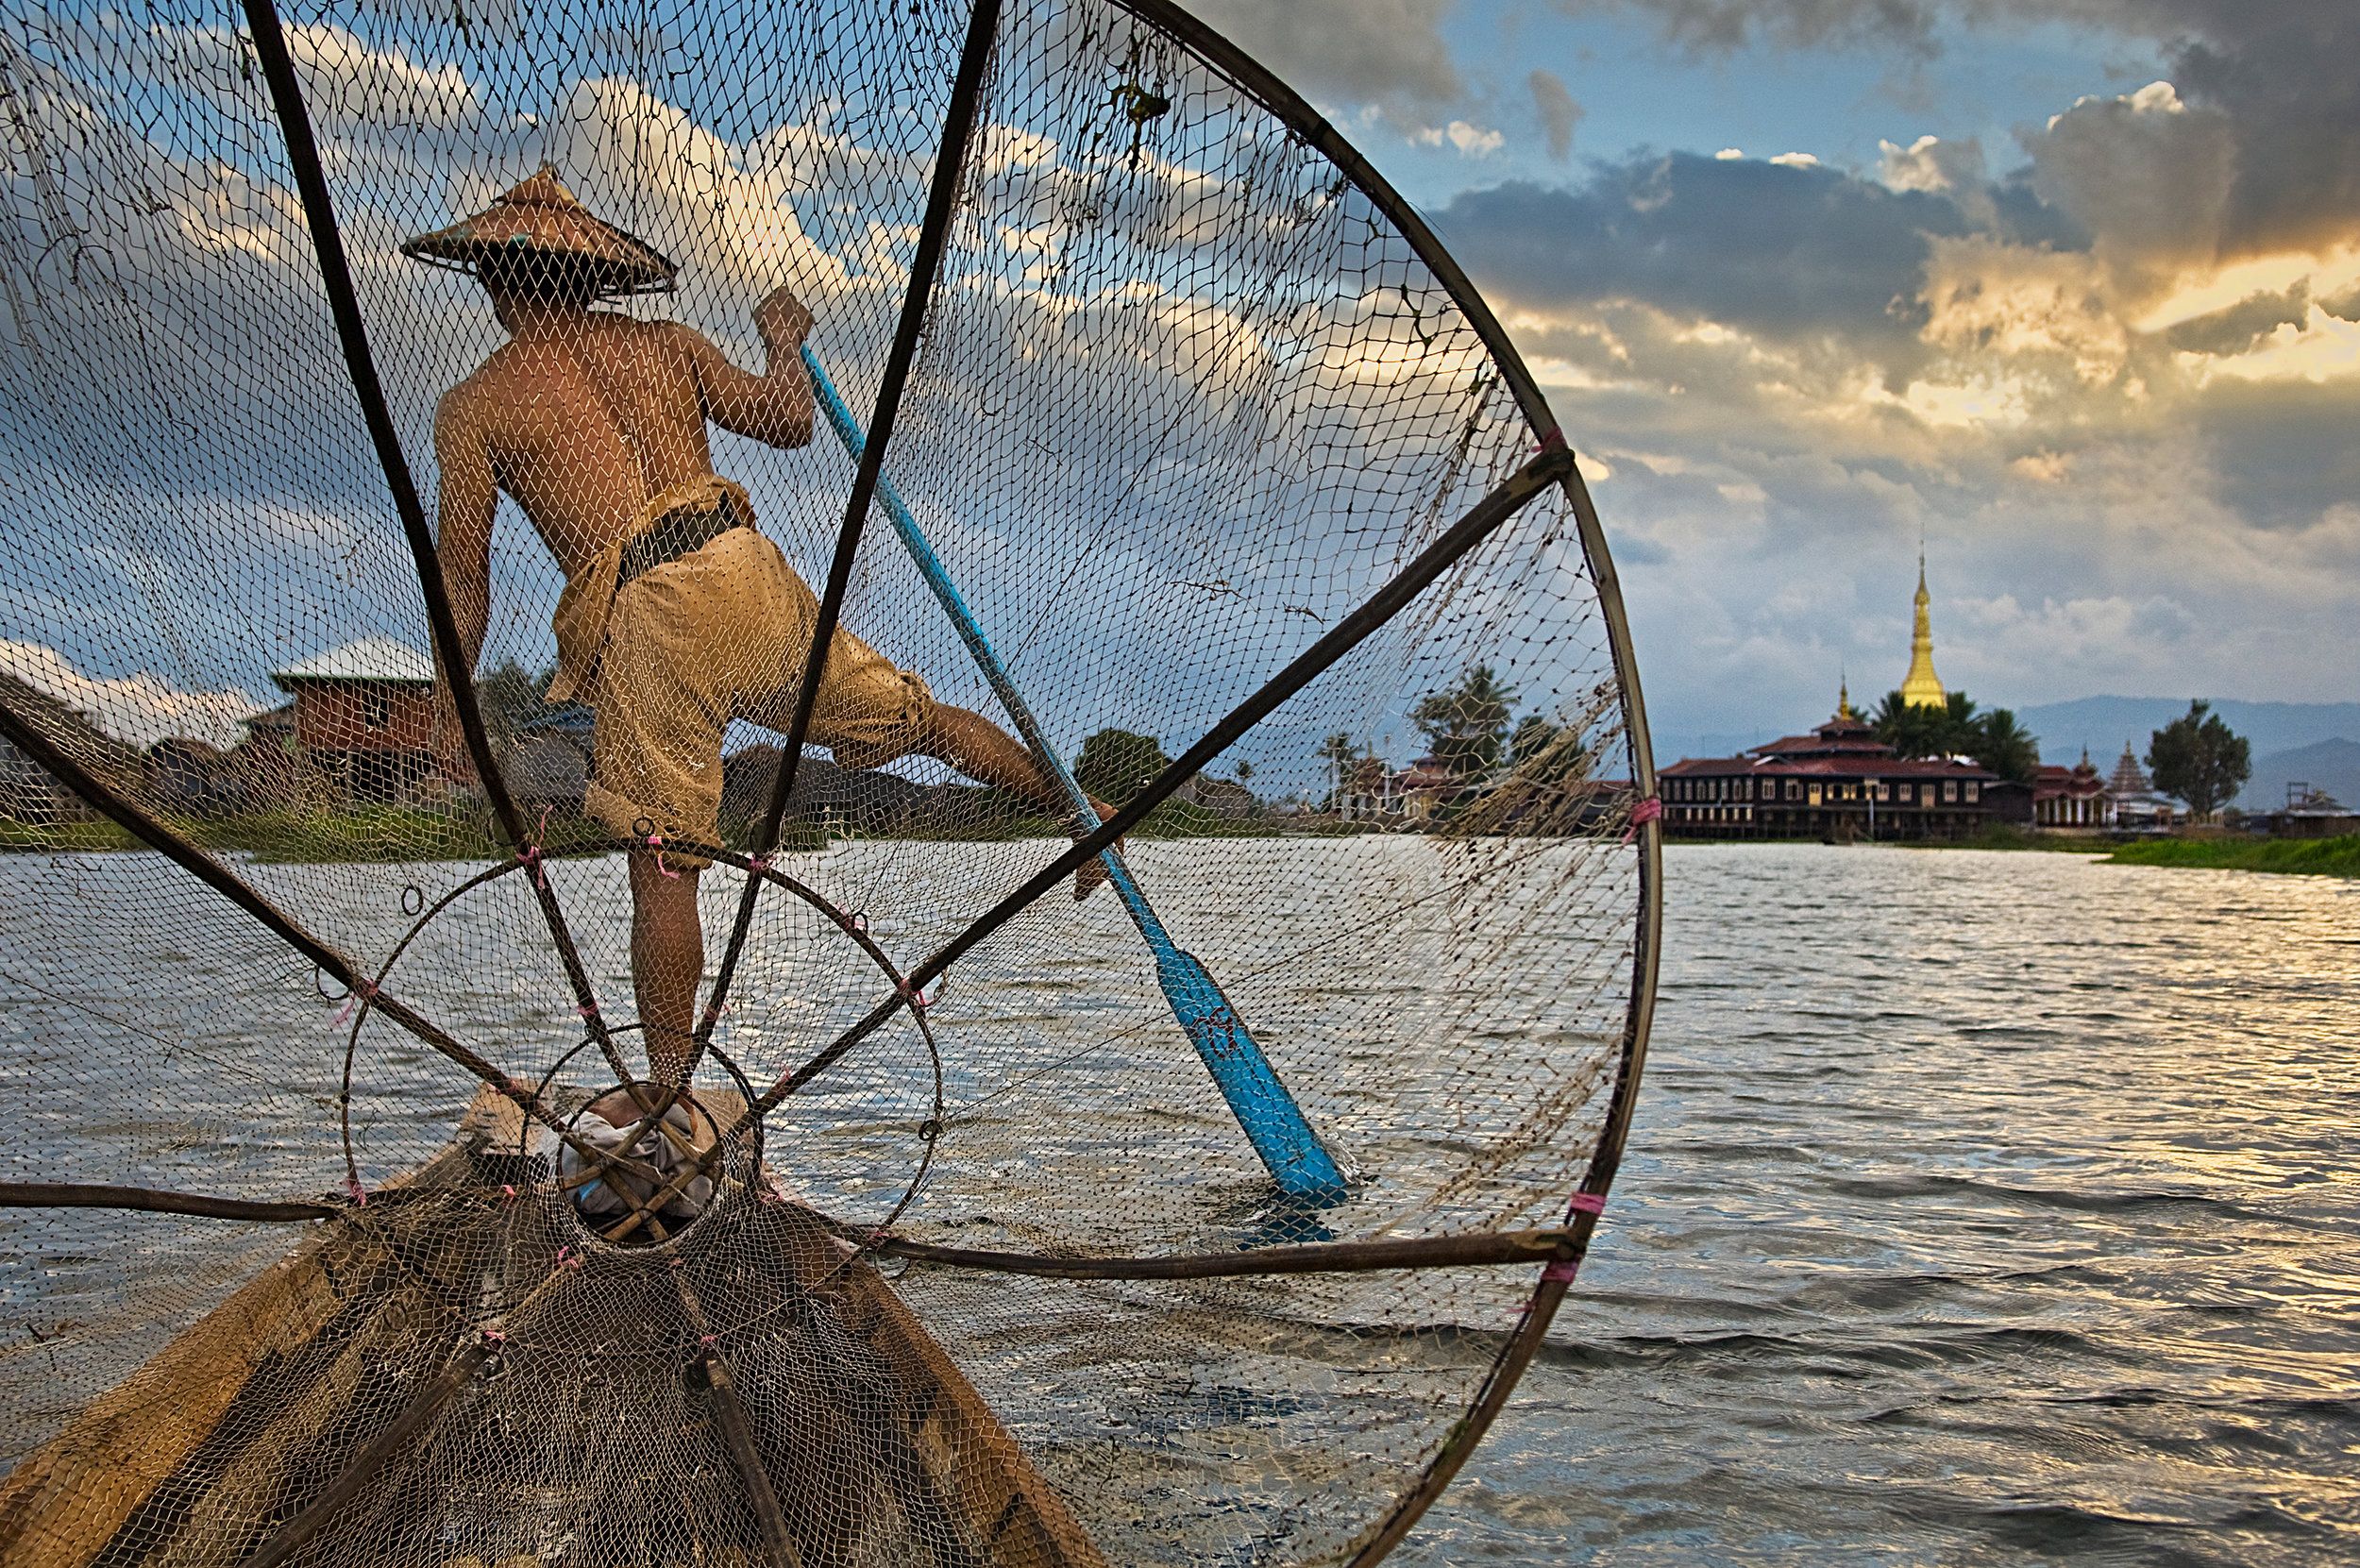 STEVE MCCURRY,  Fisherman on Inle Lake, Myanmar/Burma,  2008